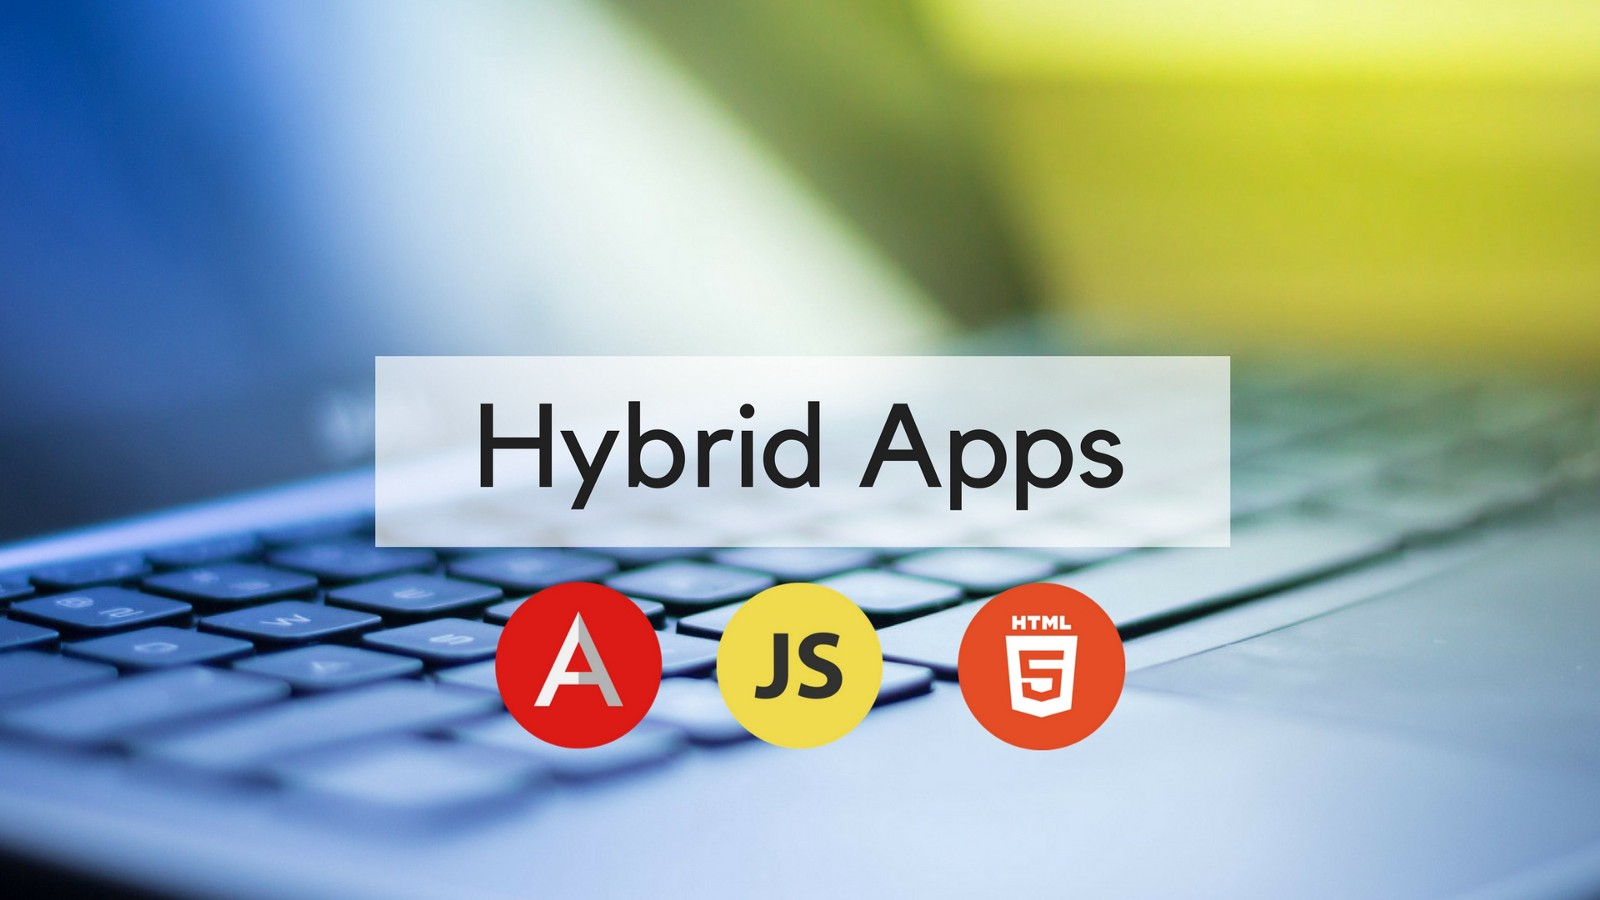 today we re starting out our series of articles about hybrid mobile app development in this article we re going to show how to build a simple hybrid